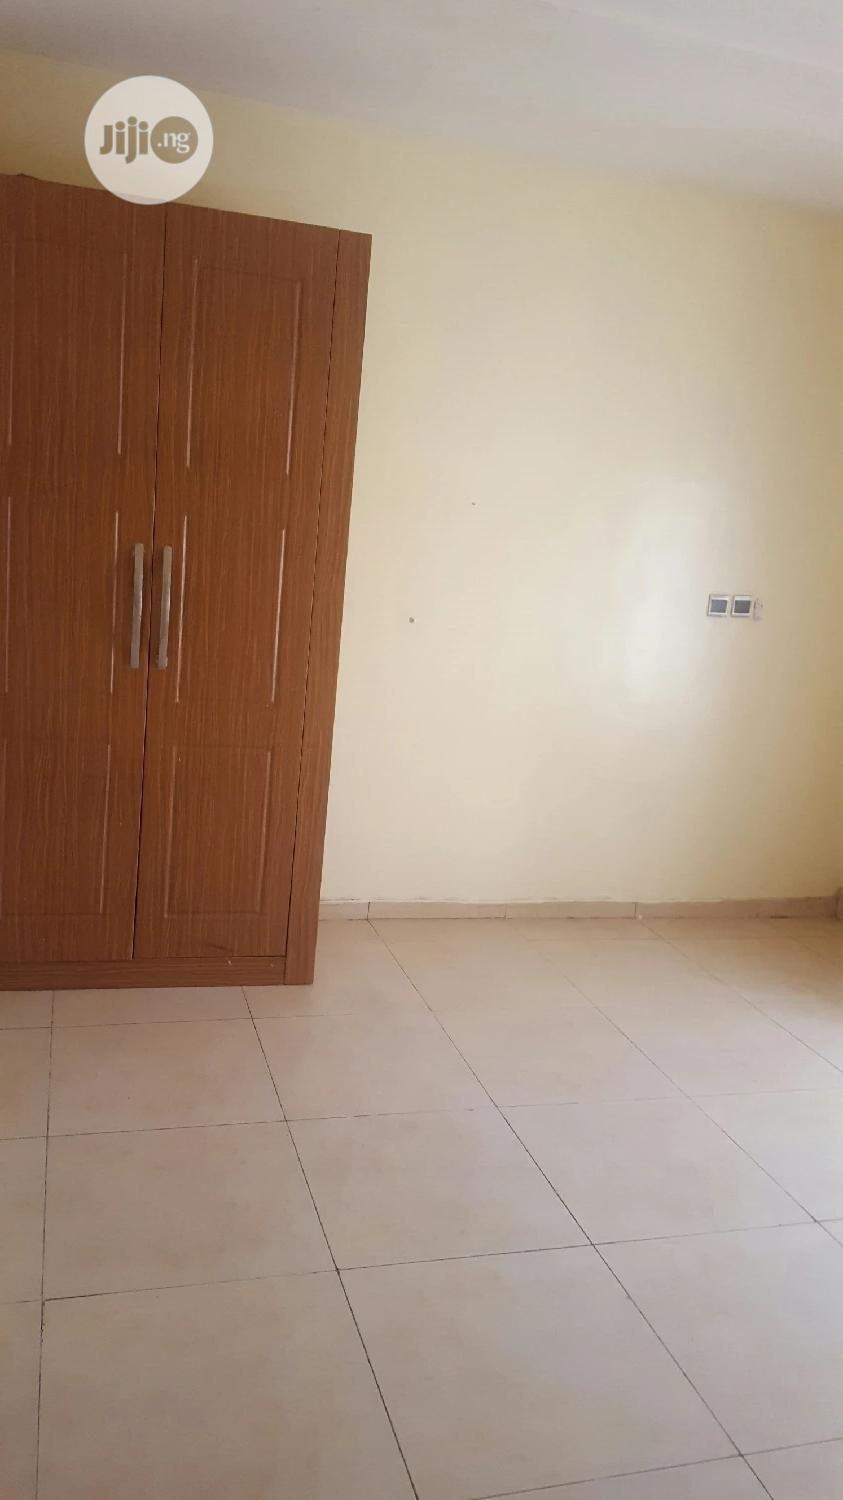 Newly Built 2 Bedroom Flat For Rent At Lekki | Houses & Apartments For Rent for sale in Lekki Phase 2, Lagos State, Nigeria